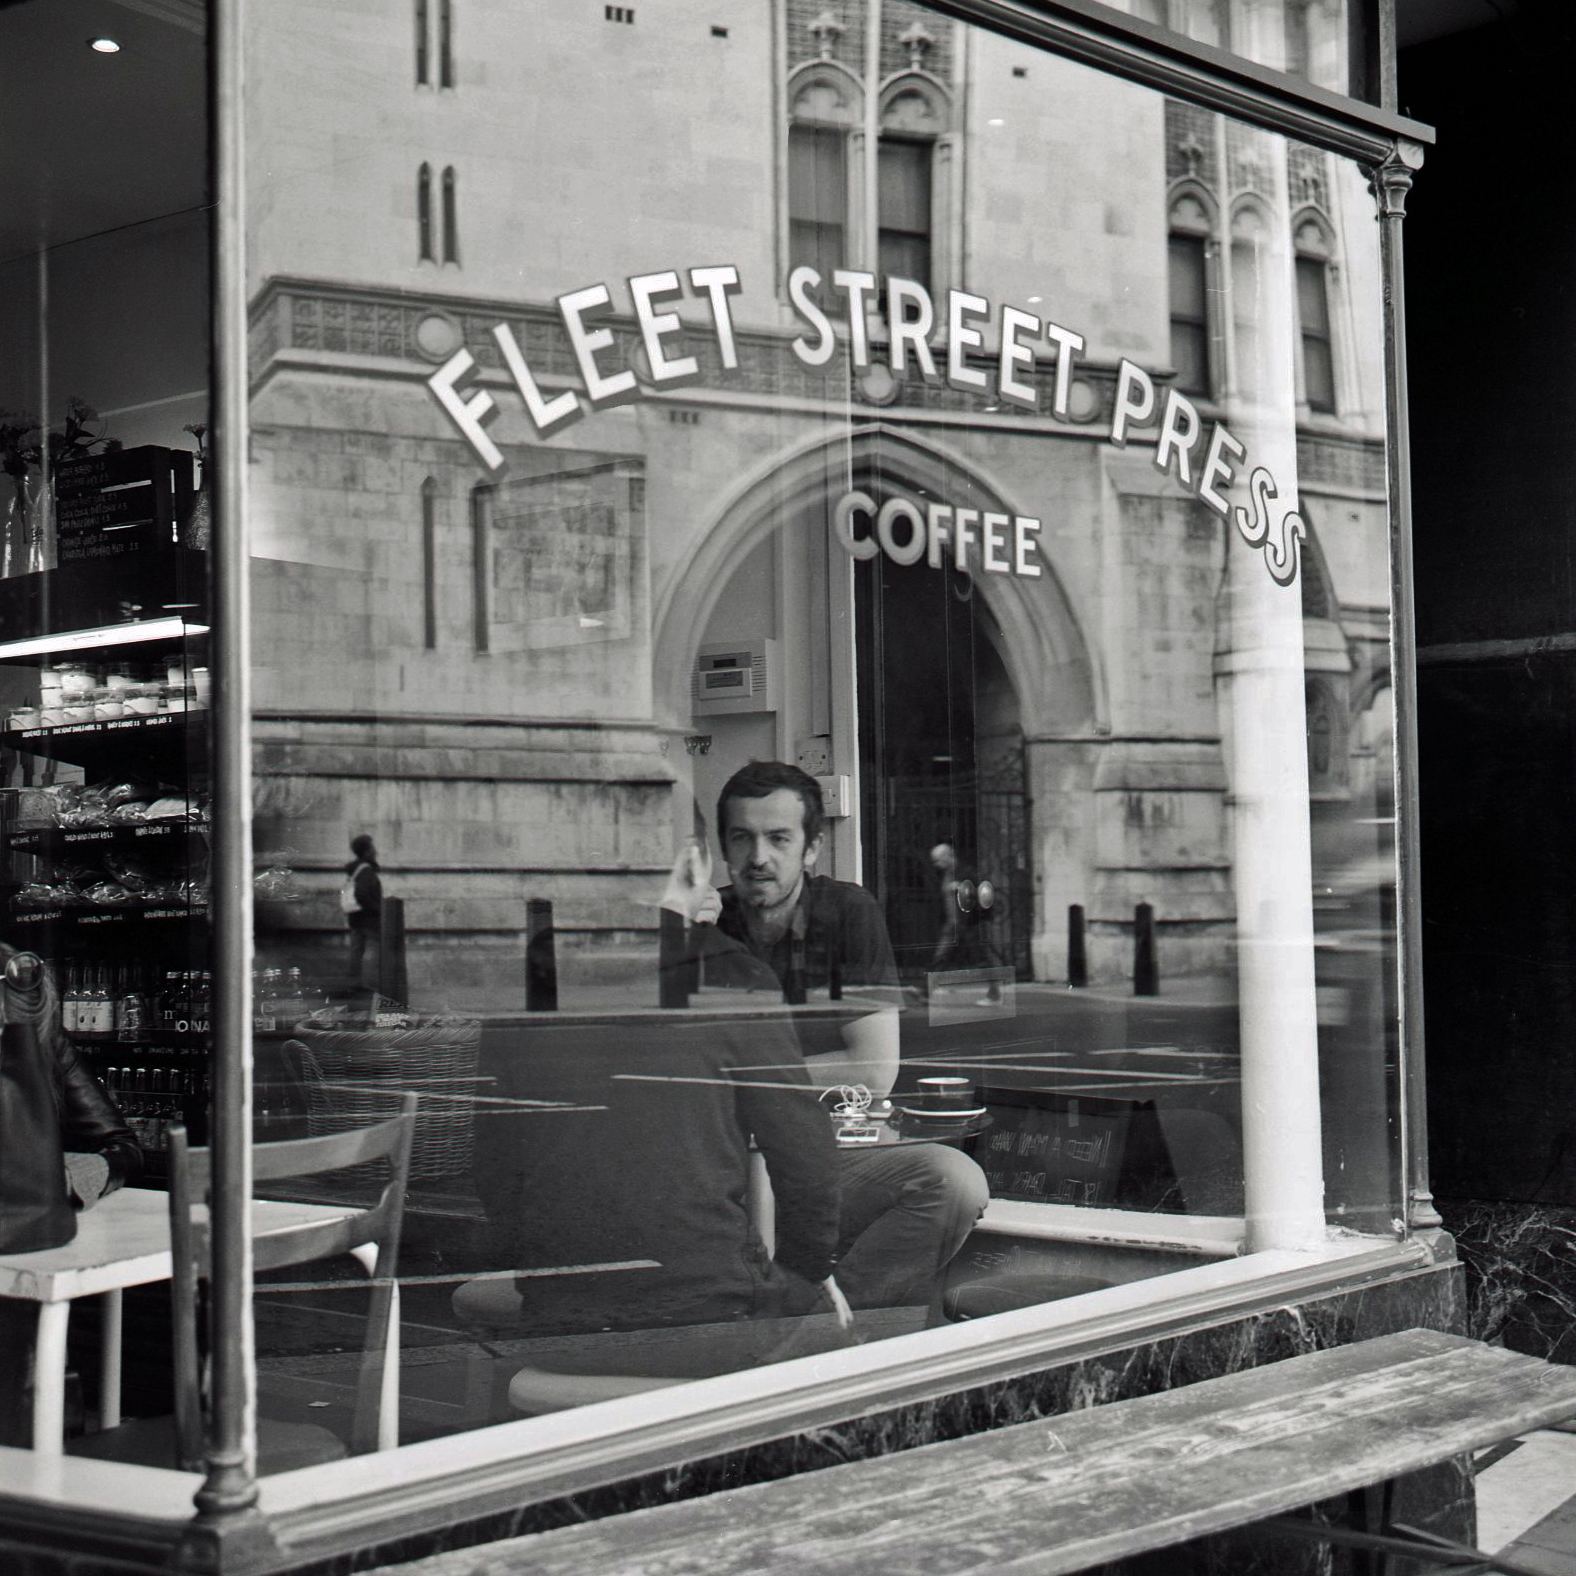 Coffee Shop, London